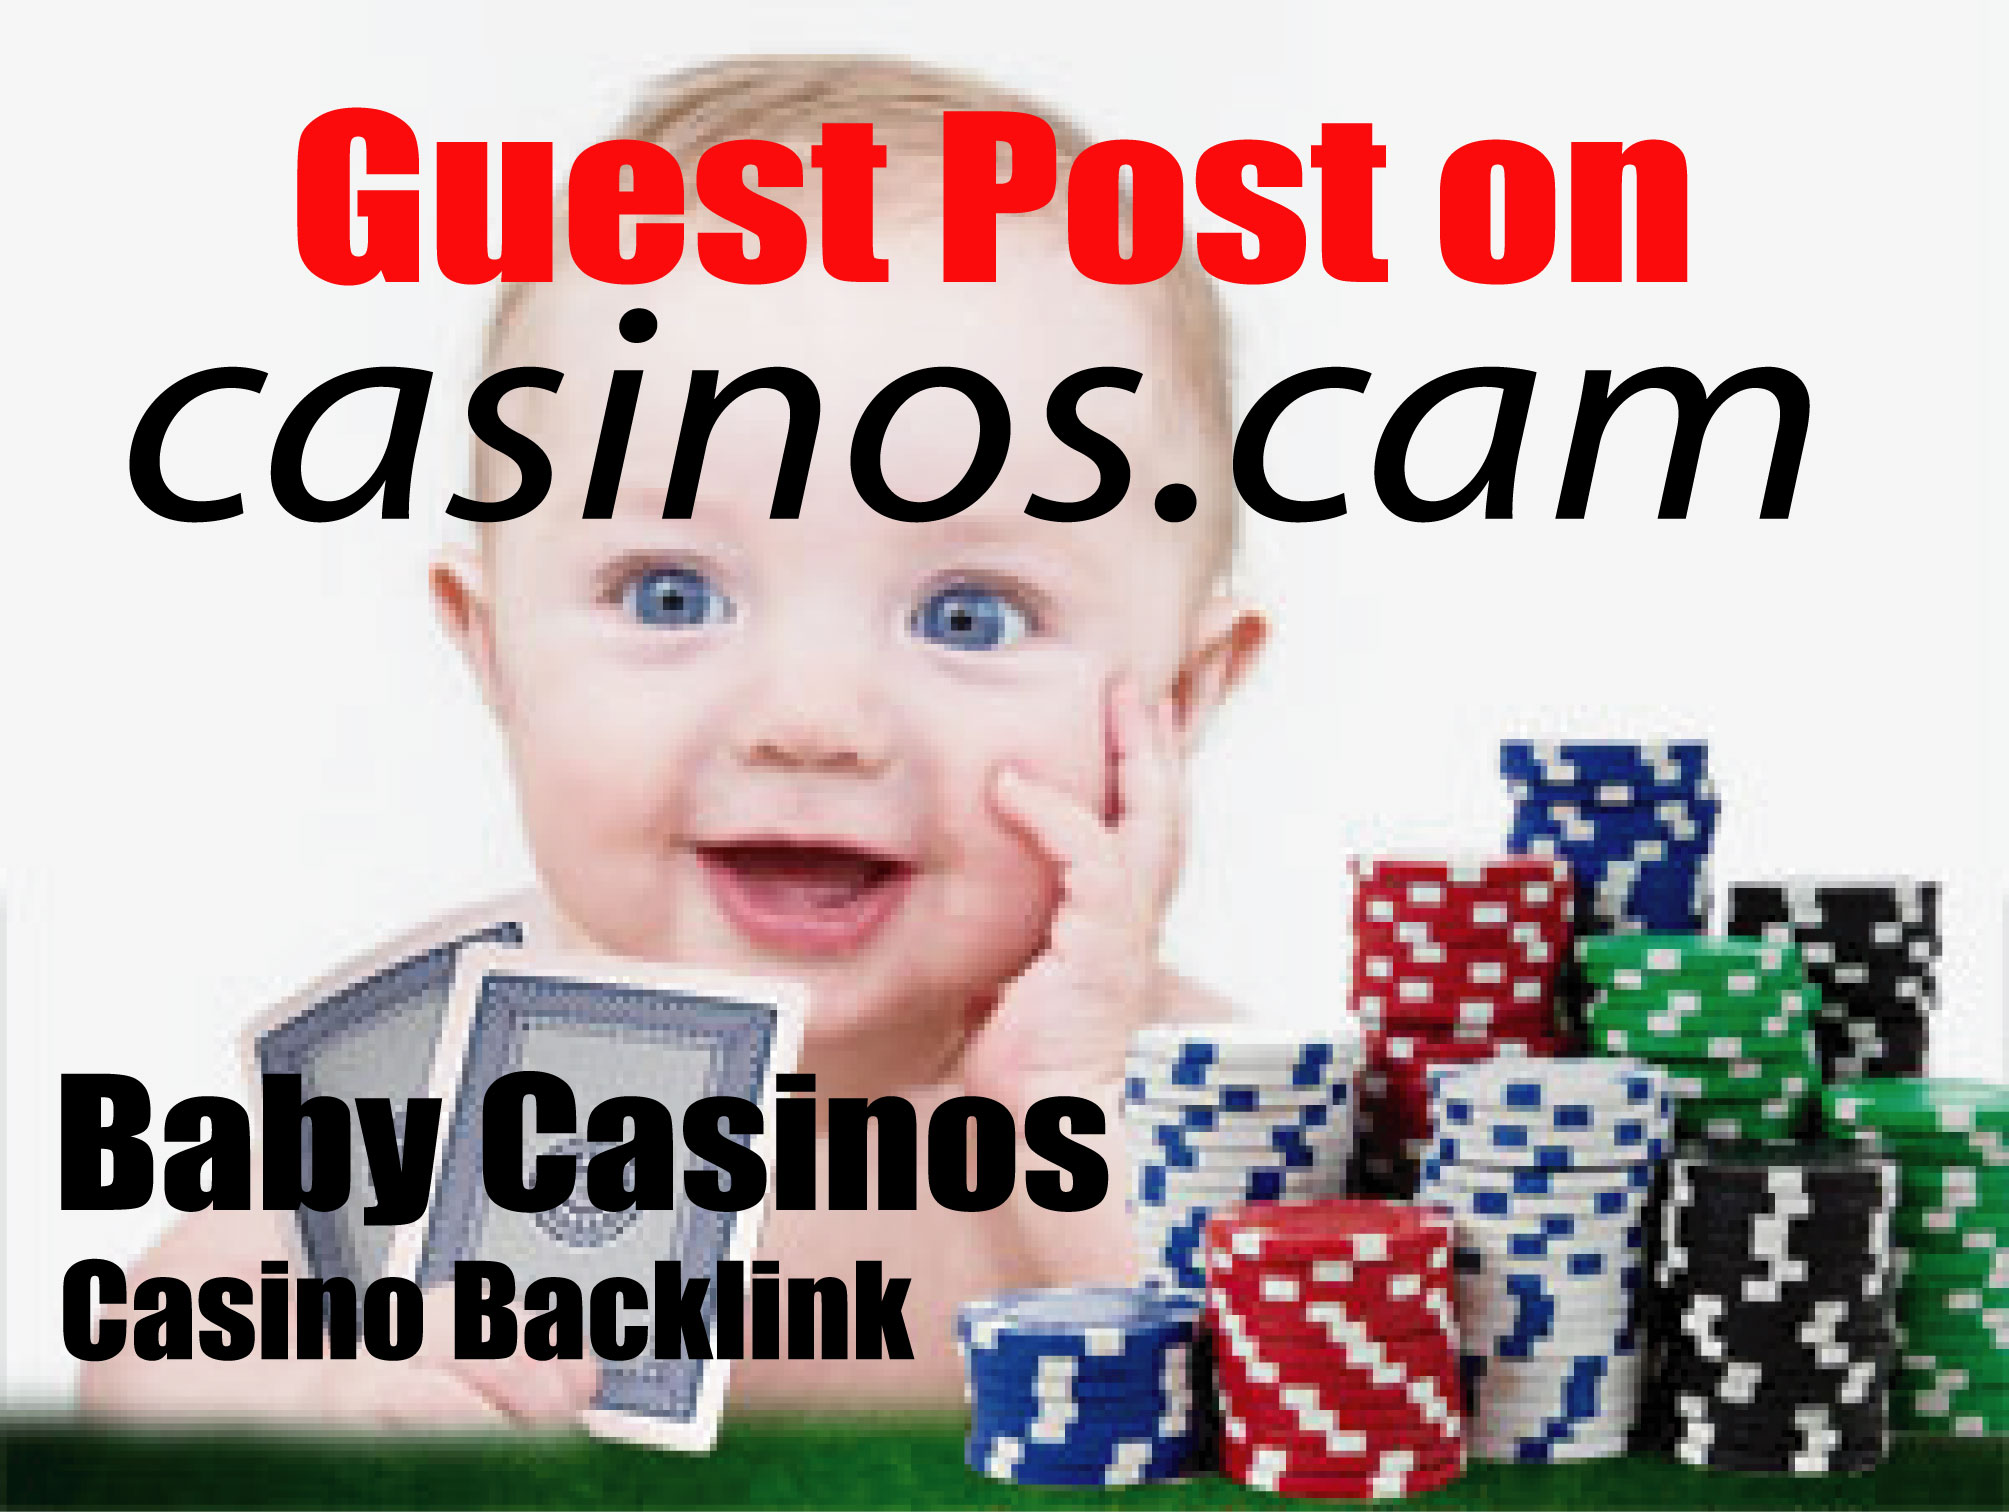 Baby Casinos 50 Backlink Guest Post on Casinos. cam,  Gambling,  Online